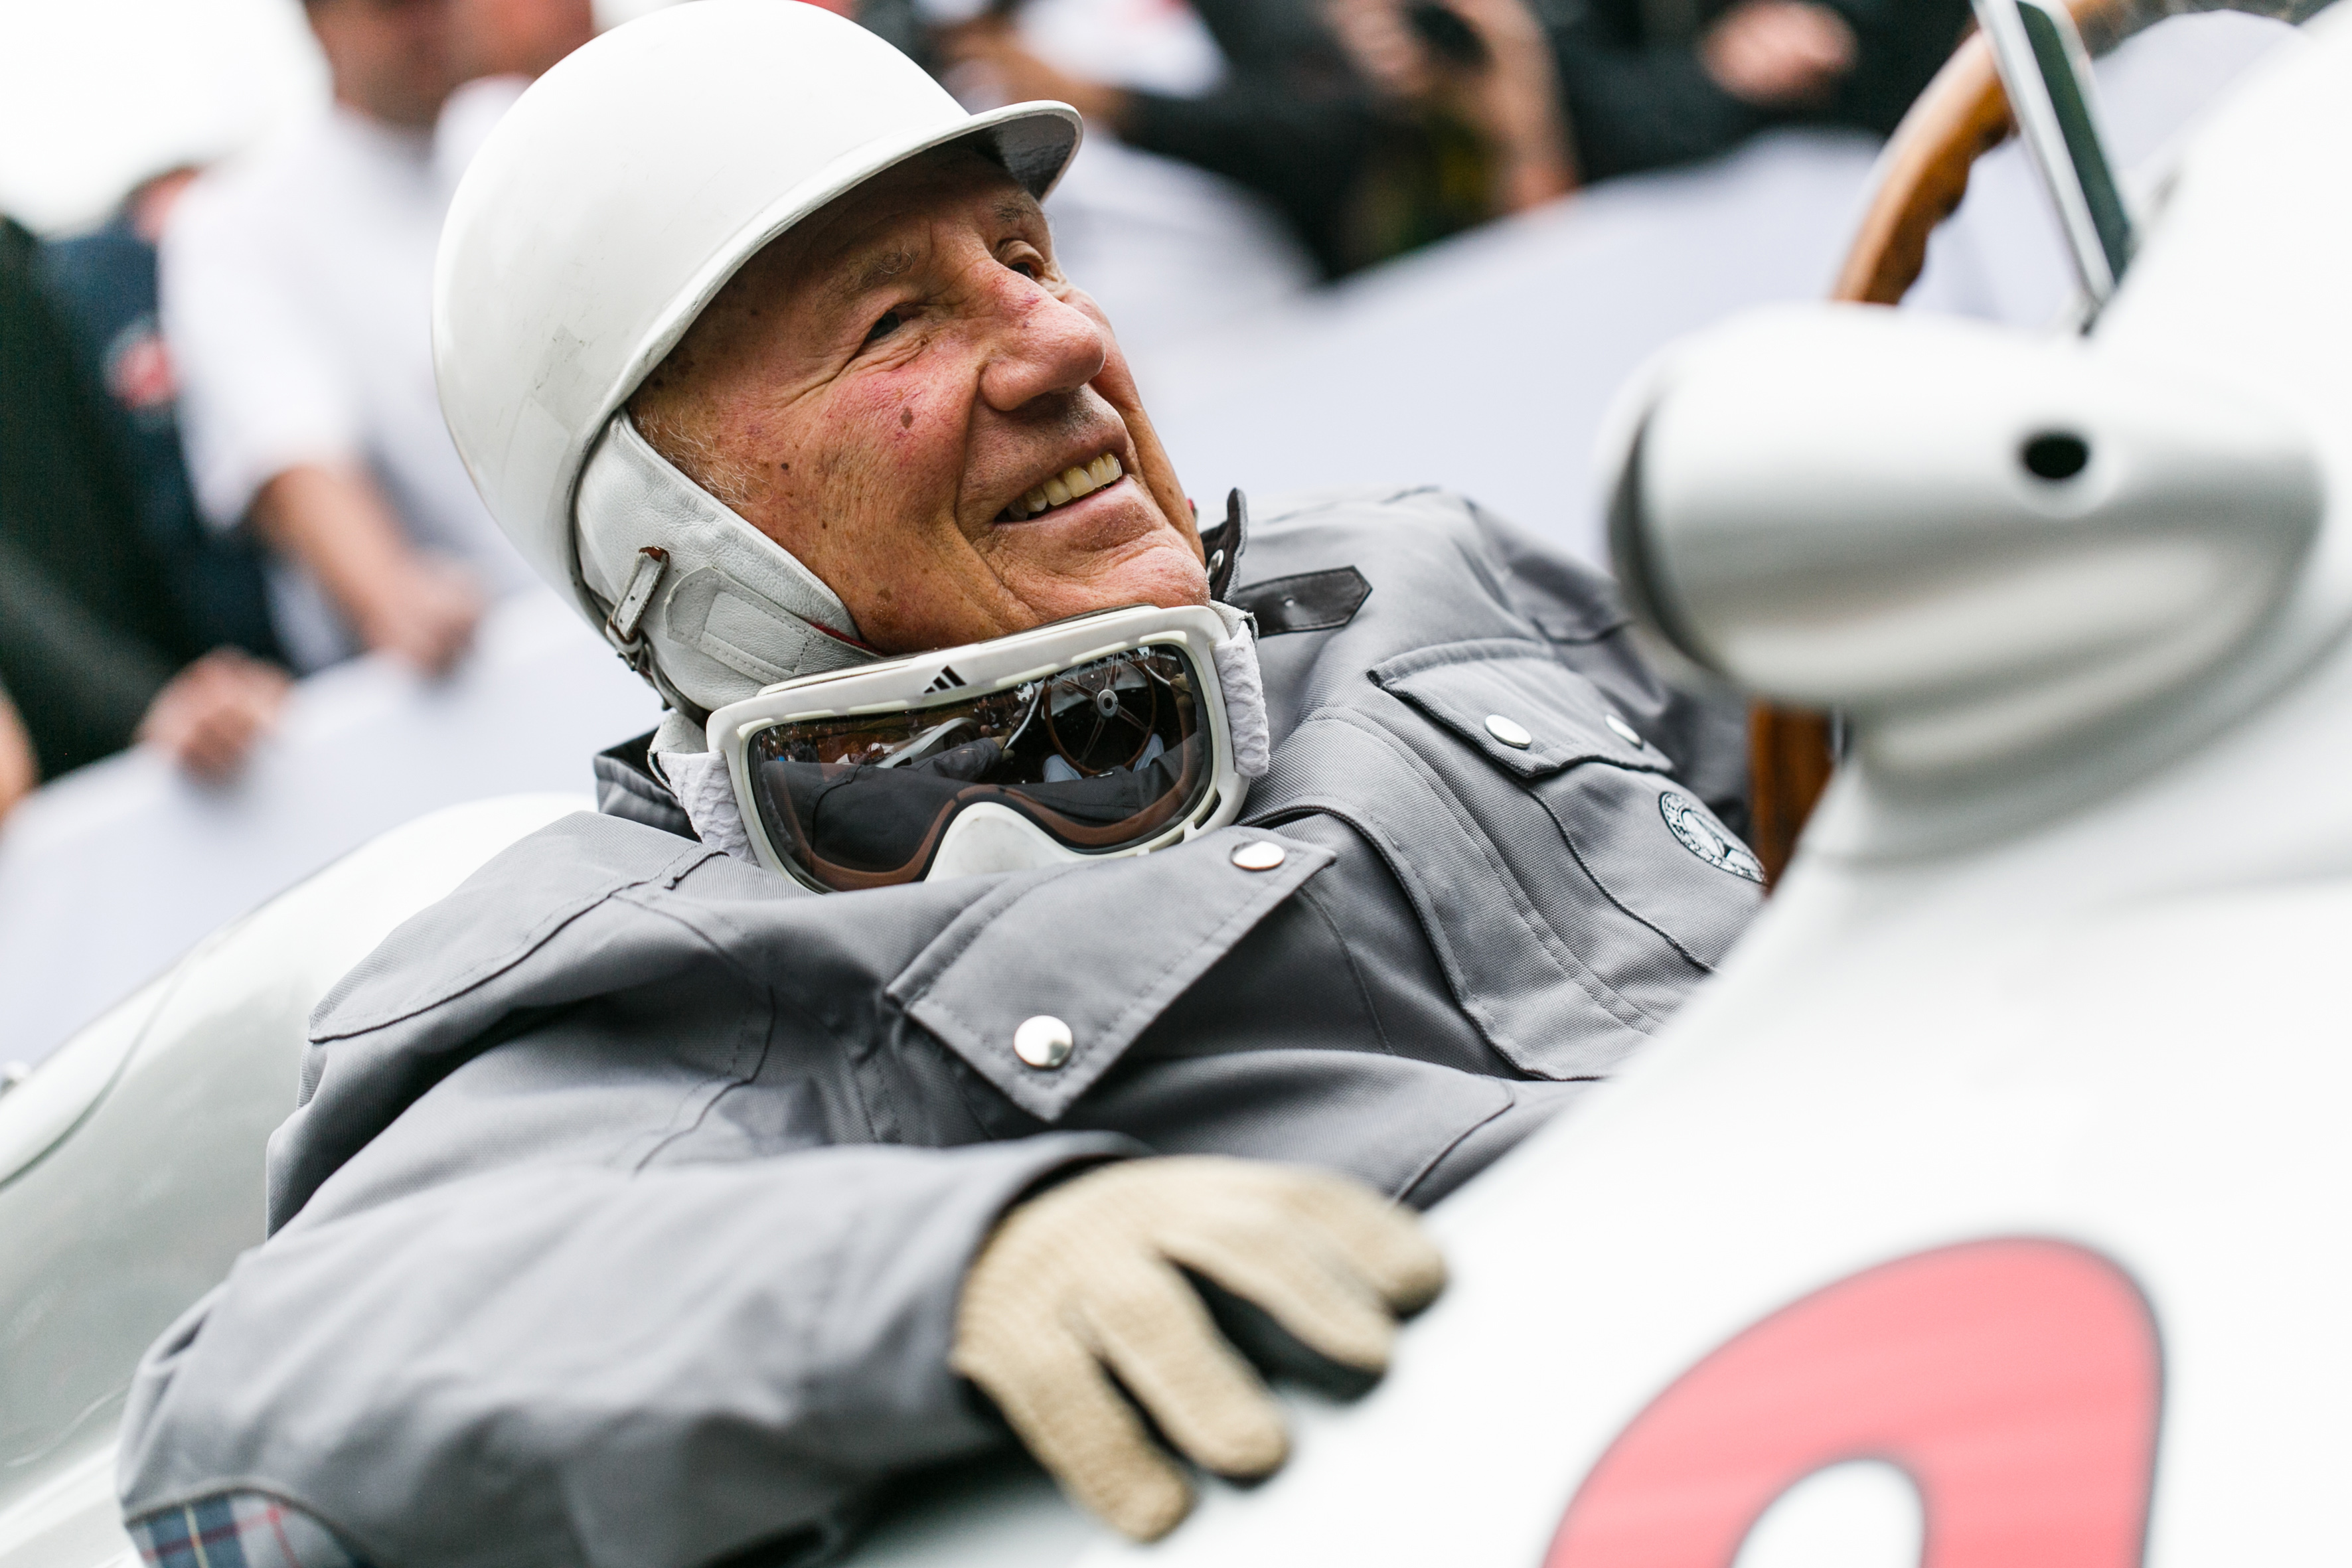 Sir Stirling Moss: remembering a motorsport legend